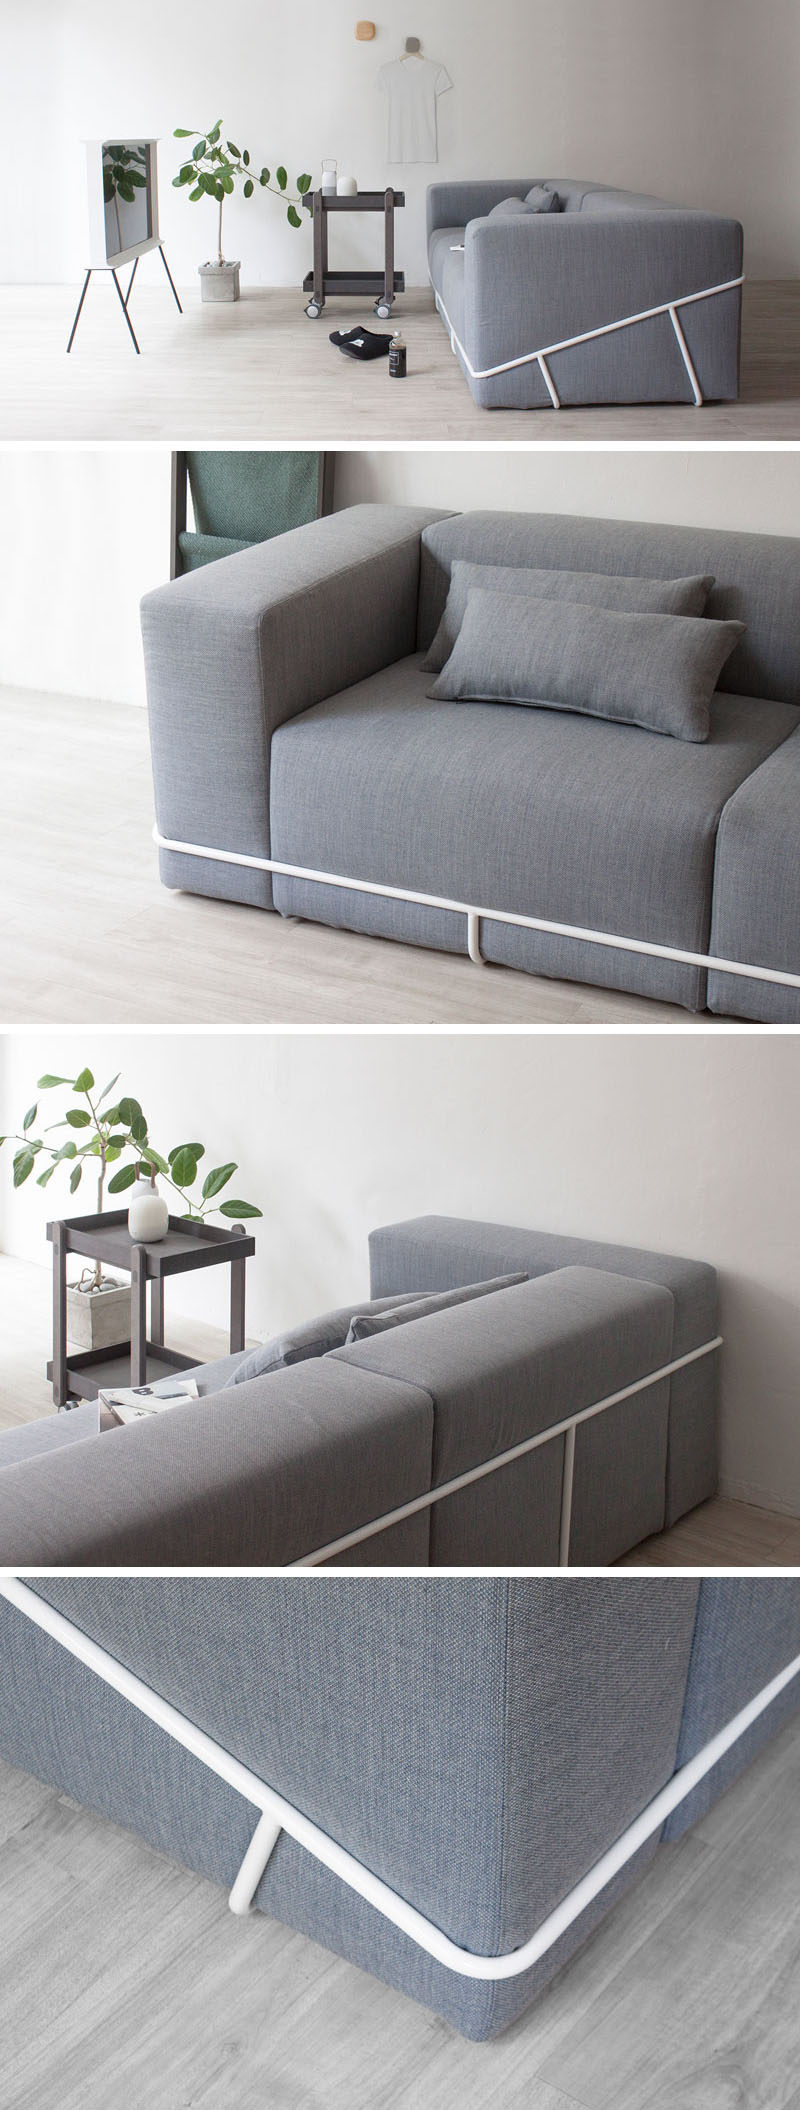 Seoul Based Designer Cho Hyung Suk, Has Designed A Modern Grey Couch That  Sits Within